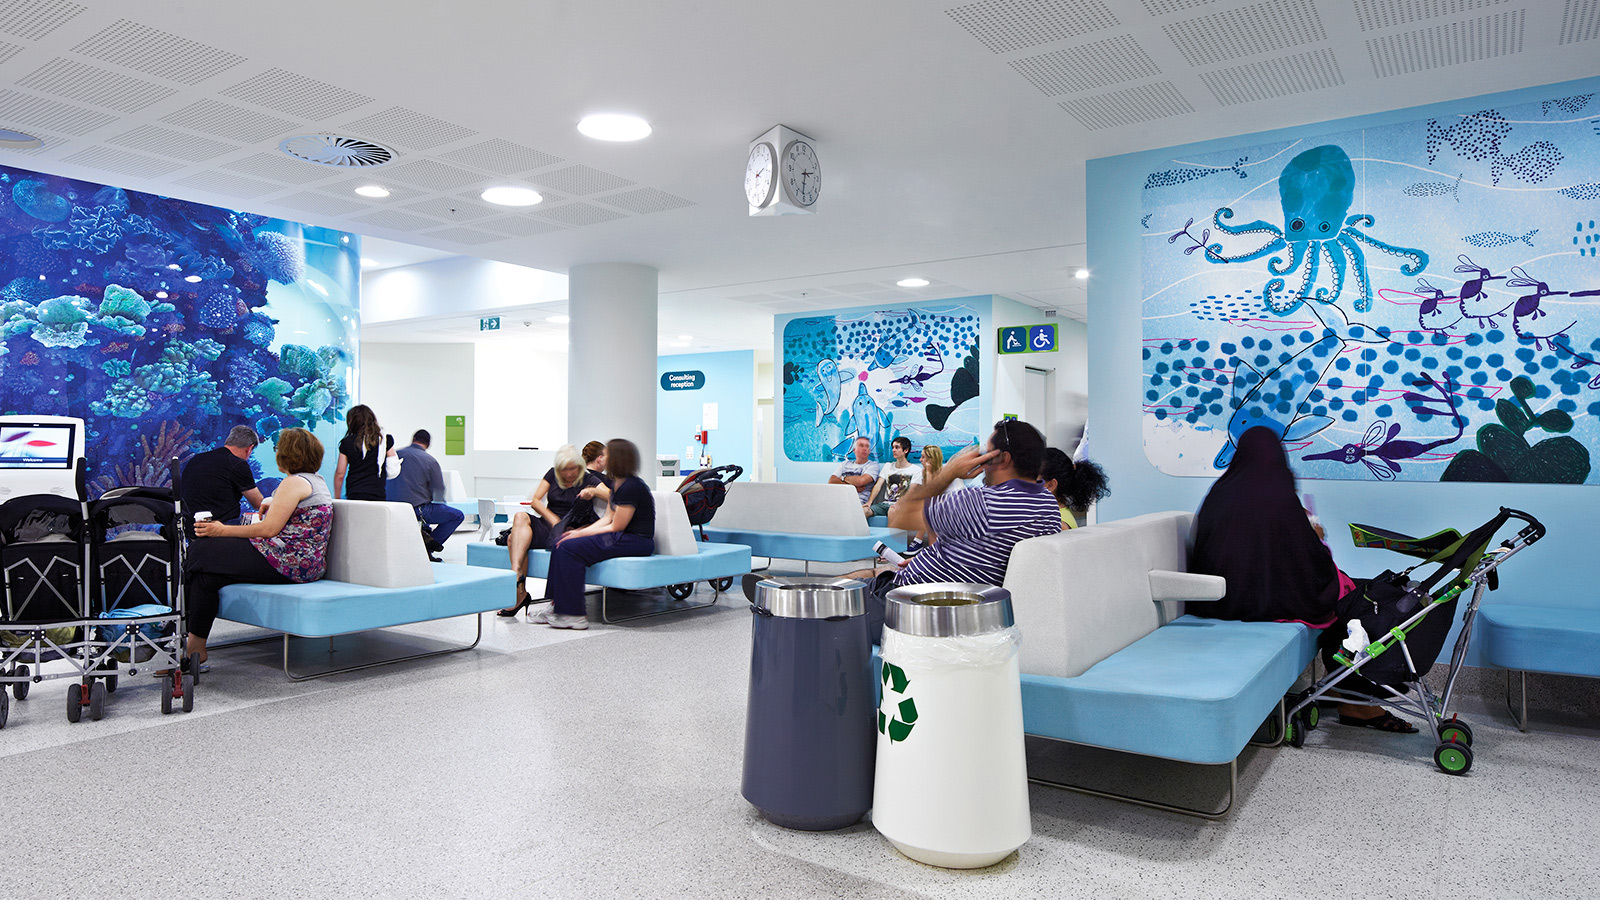 Royal Children's Hospital. Designed by Büro North / Illustrations by Jane Reiseger @enviromeant.com